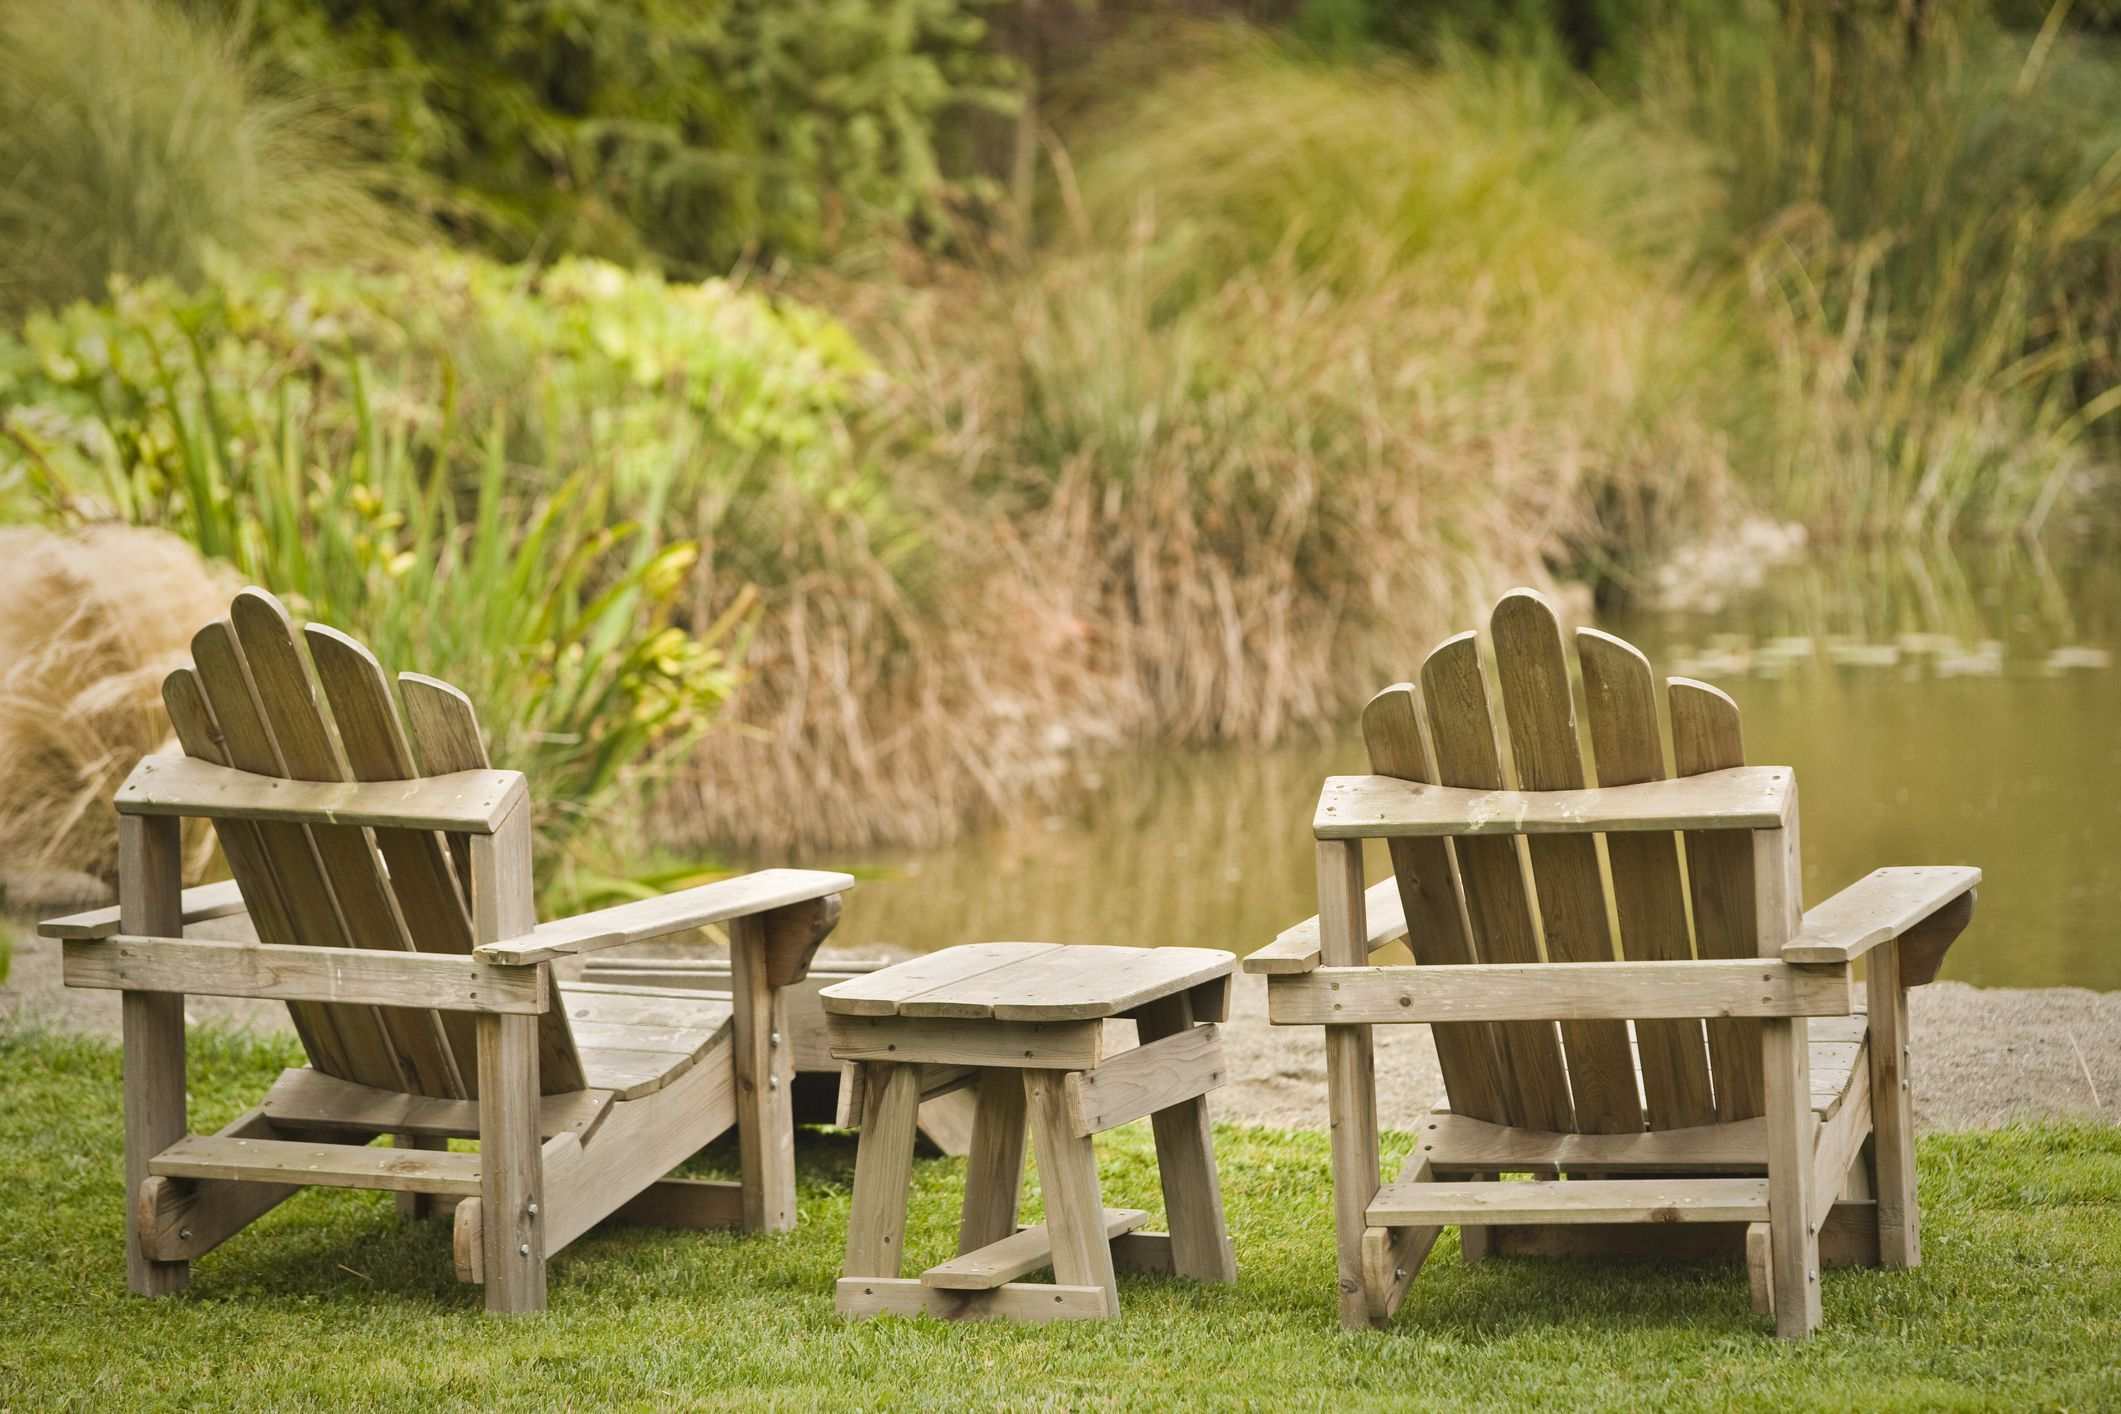 15 Best Adirondack Chairs Plastic Wood And Resin